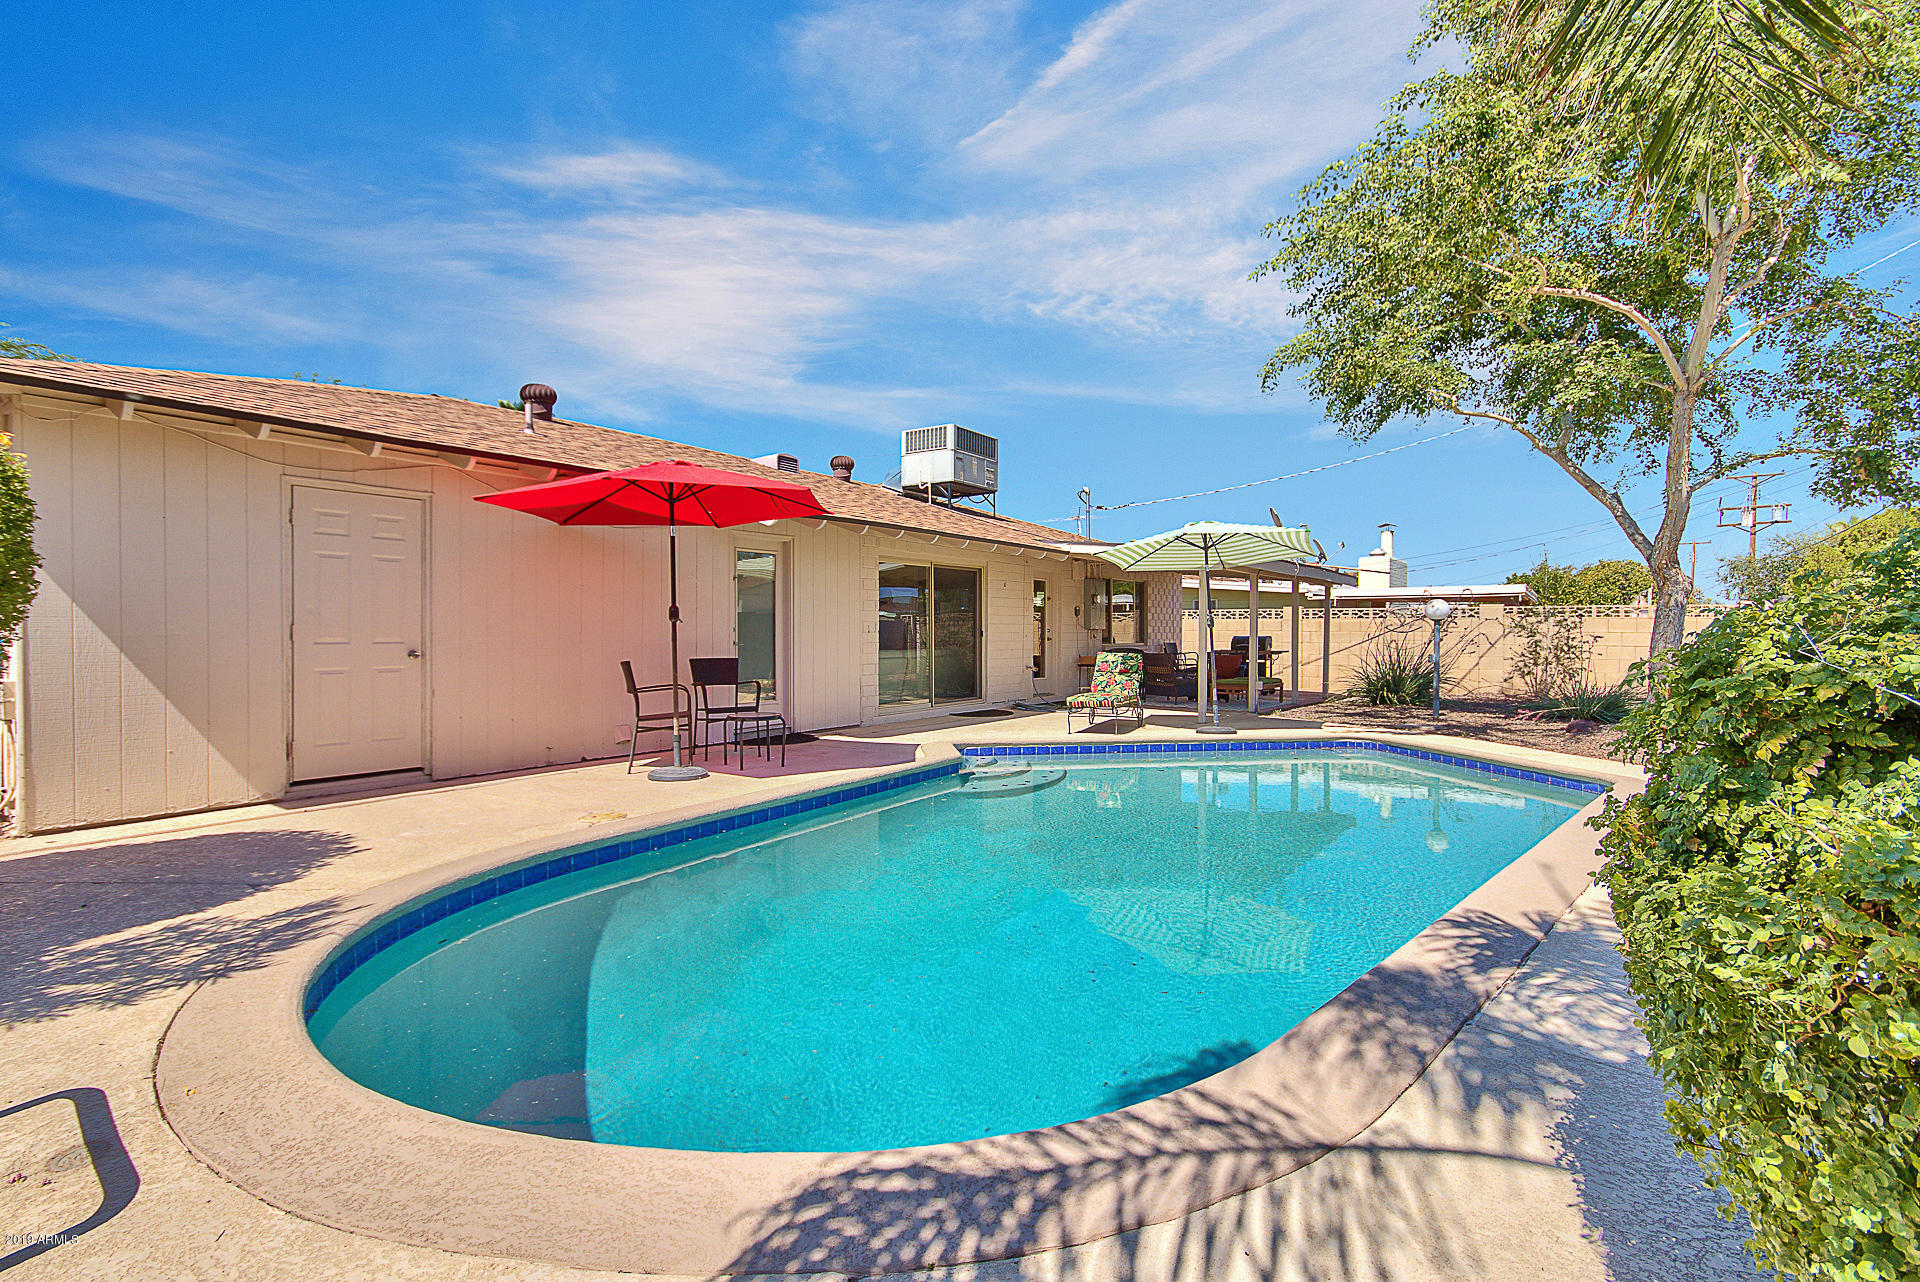 MLS 5950414 8237 E WELDON Avenue, Scottsdale, AZ 85251 Scottsdale AZ Private Pool